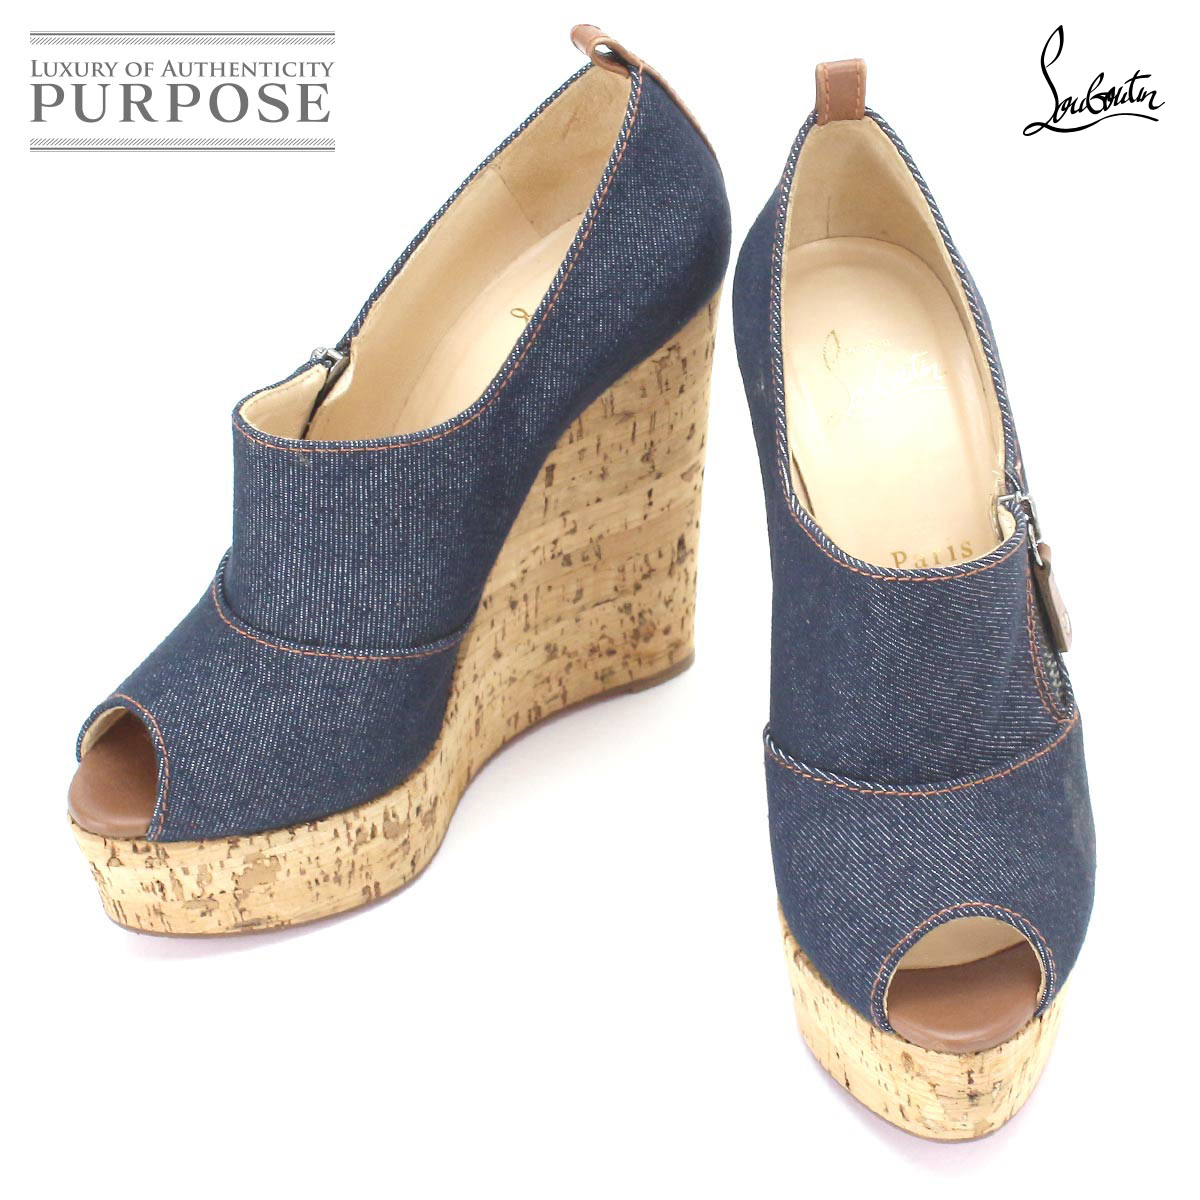 newest 4accd 5ce52 クリスチャンルブタン Christian Louboutin wedge sole sandals denim navy 38 1/2 24.5  25.0cm Lady's